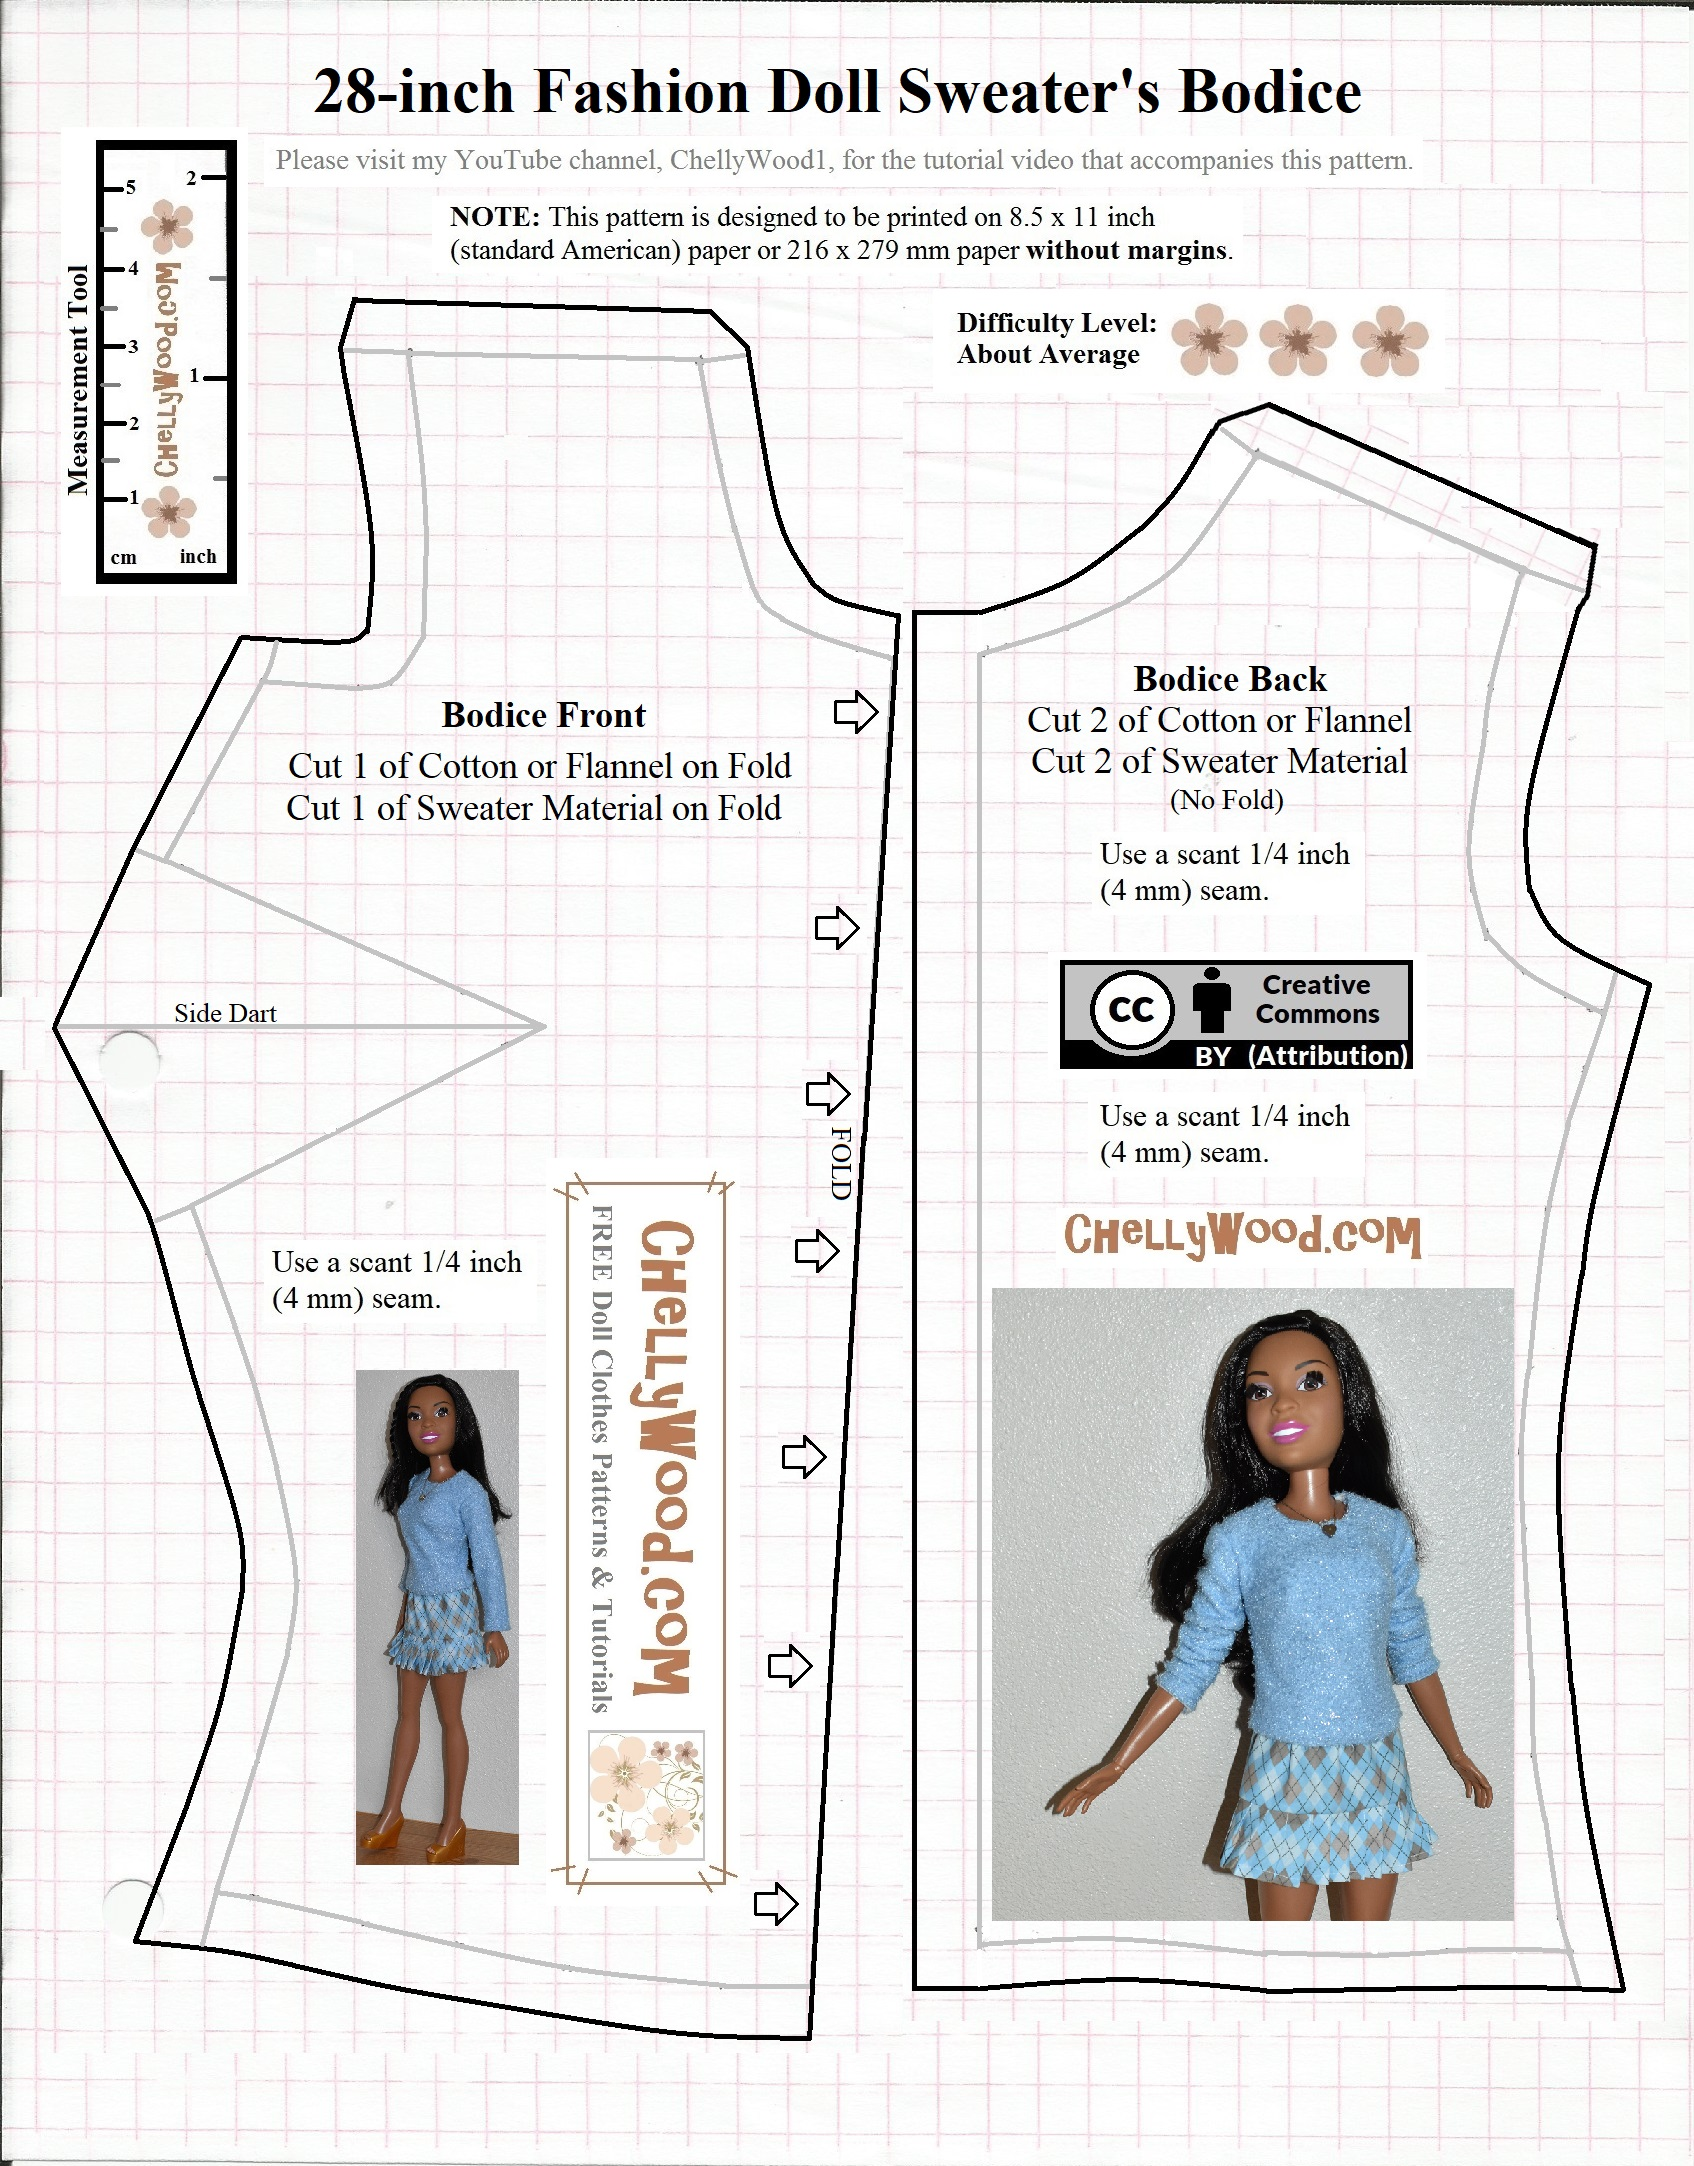 photograph regarding Barbie Dress Patterns Free Printable Pdf titled PDFpattern Wednesday: obtain a totally free sweater / jumper